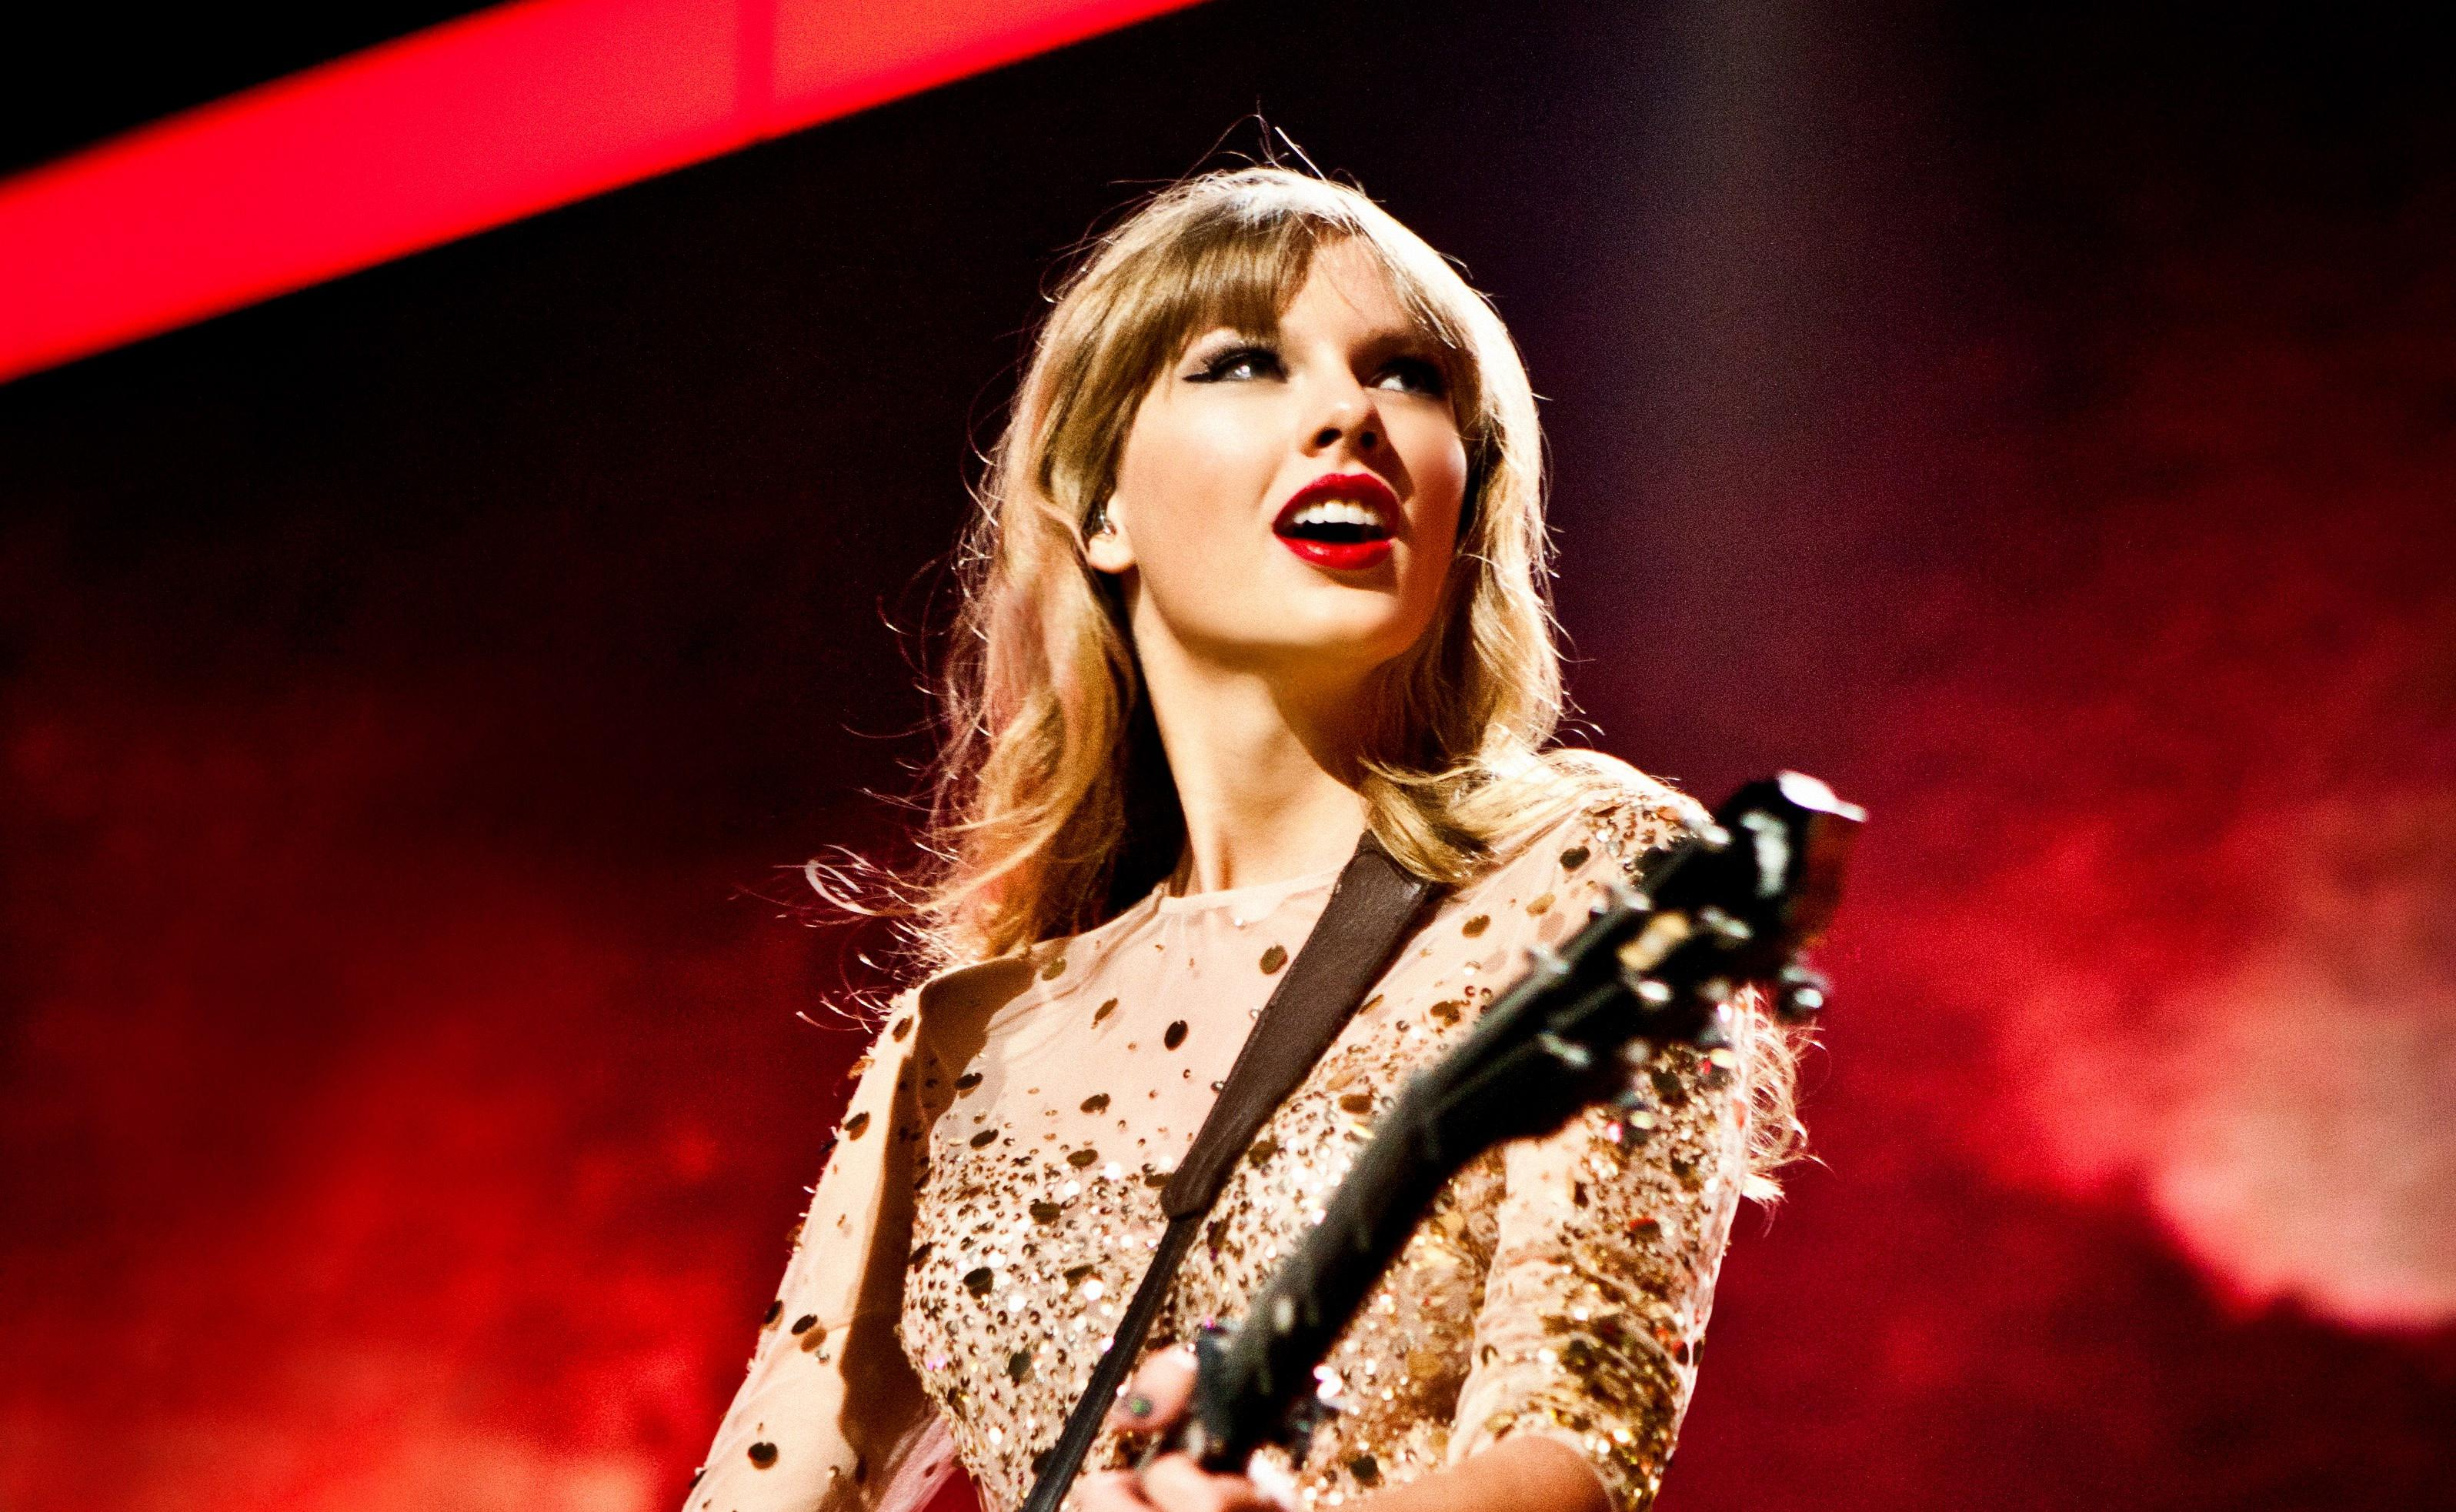 Pictures Of Taylor Swift Red Tour Playing Guitar Wallpaper Bad Blood Picture Hd